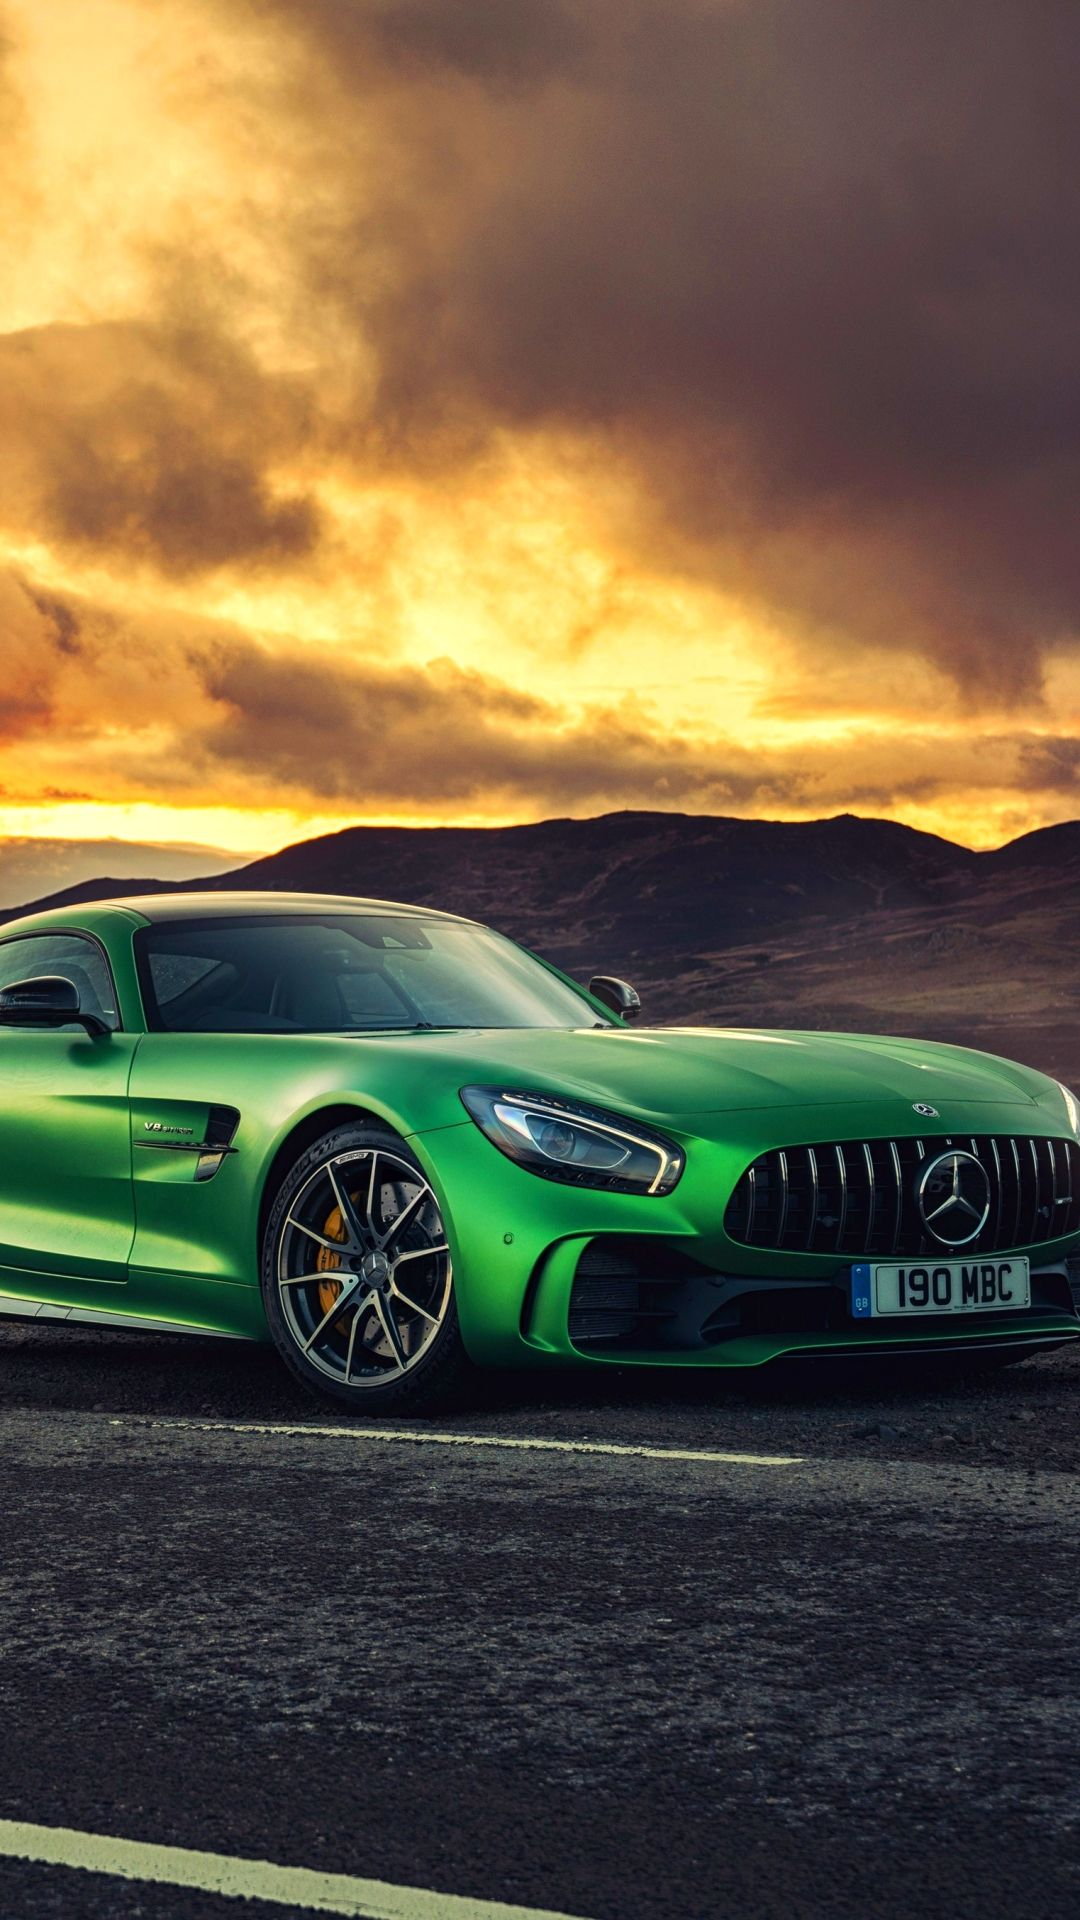 Vehicles Mercedes Amg Gt 1080x1920 Mobile Wallpaper With